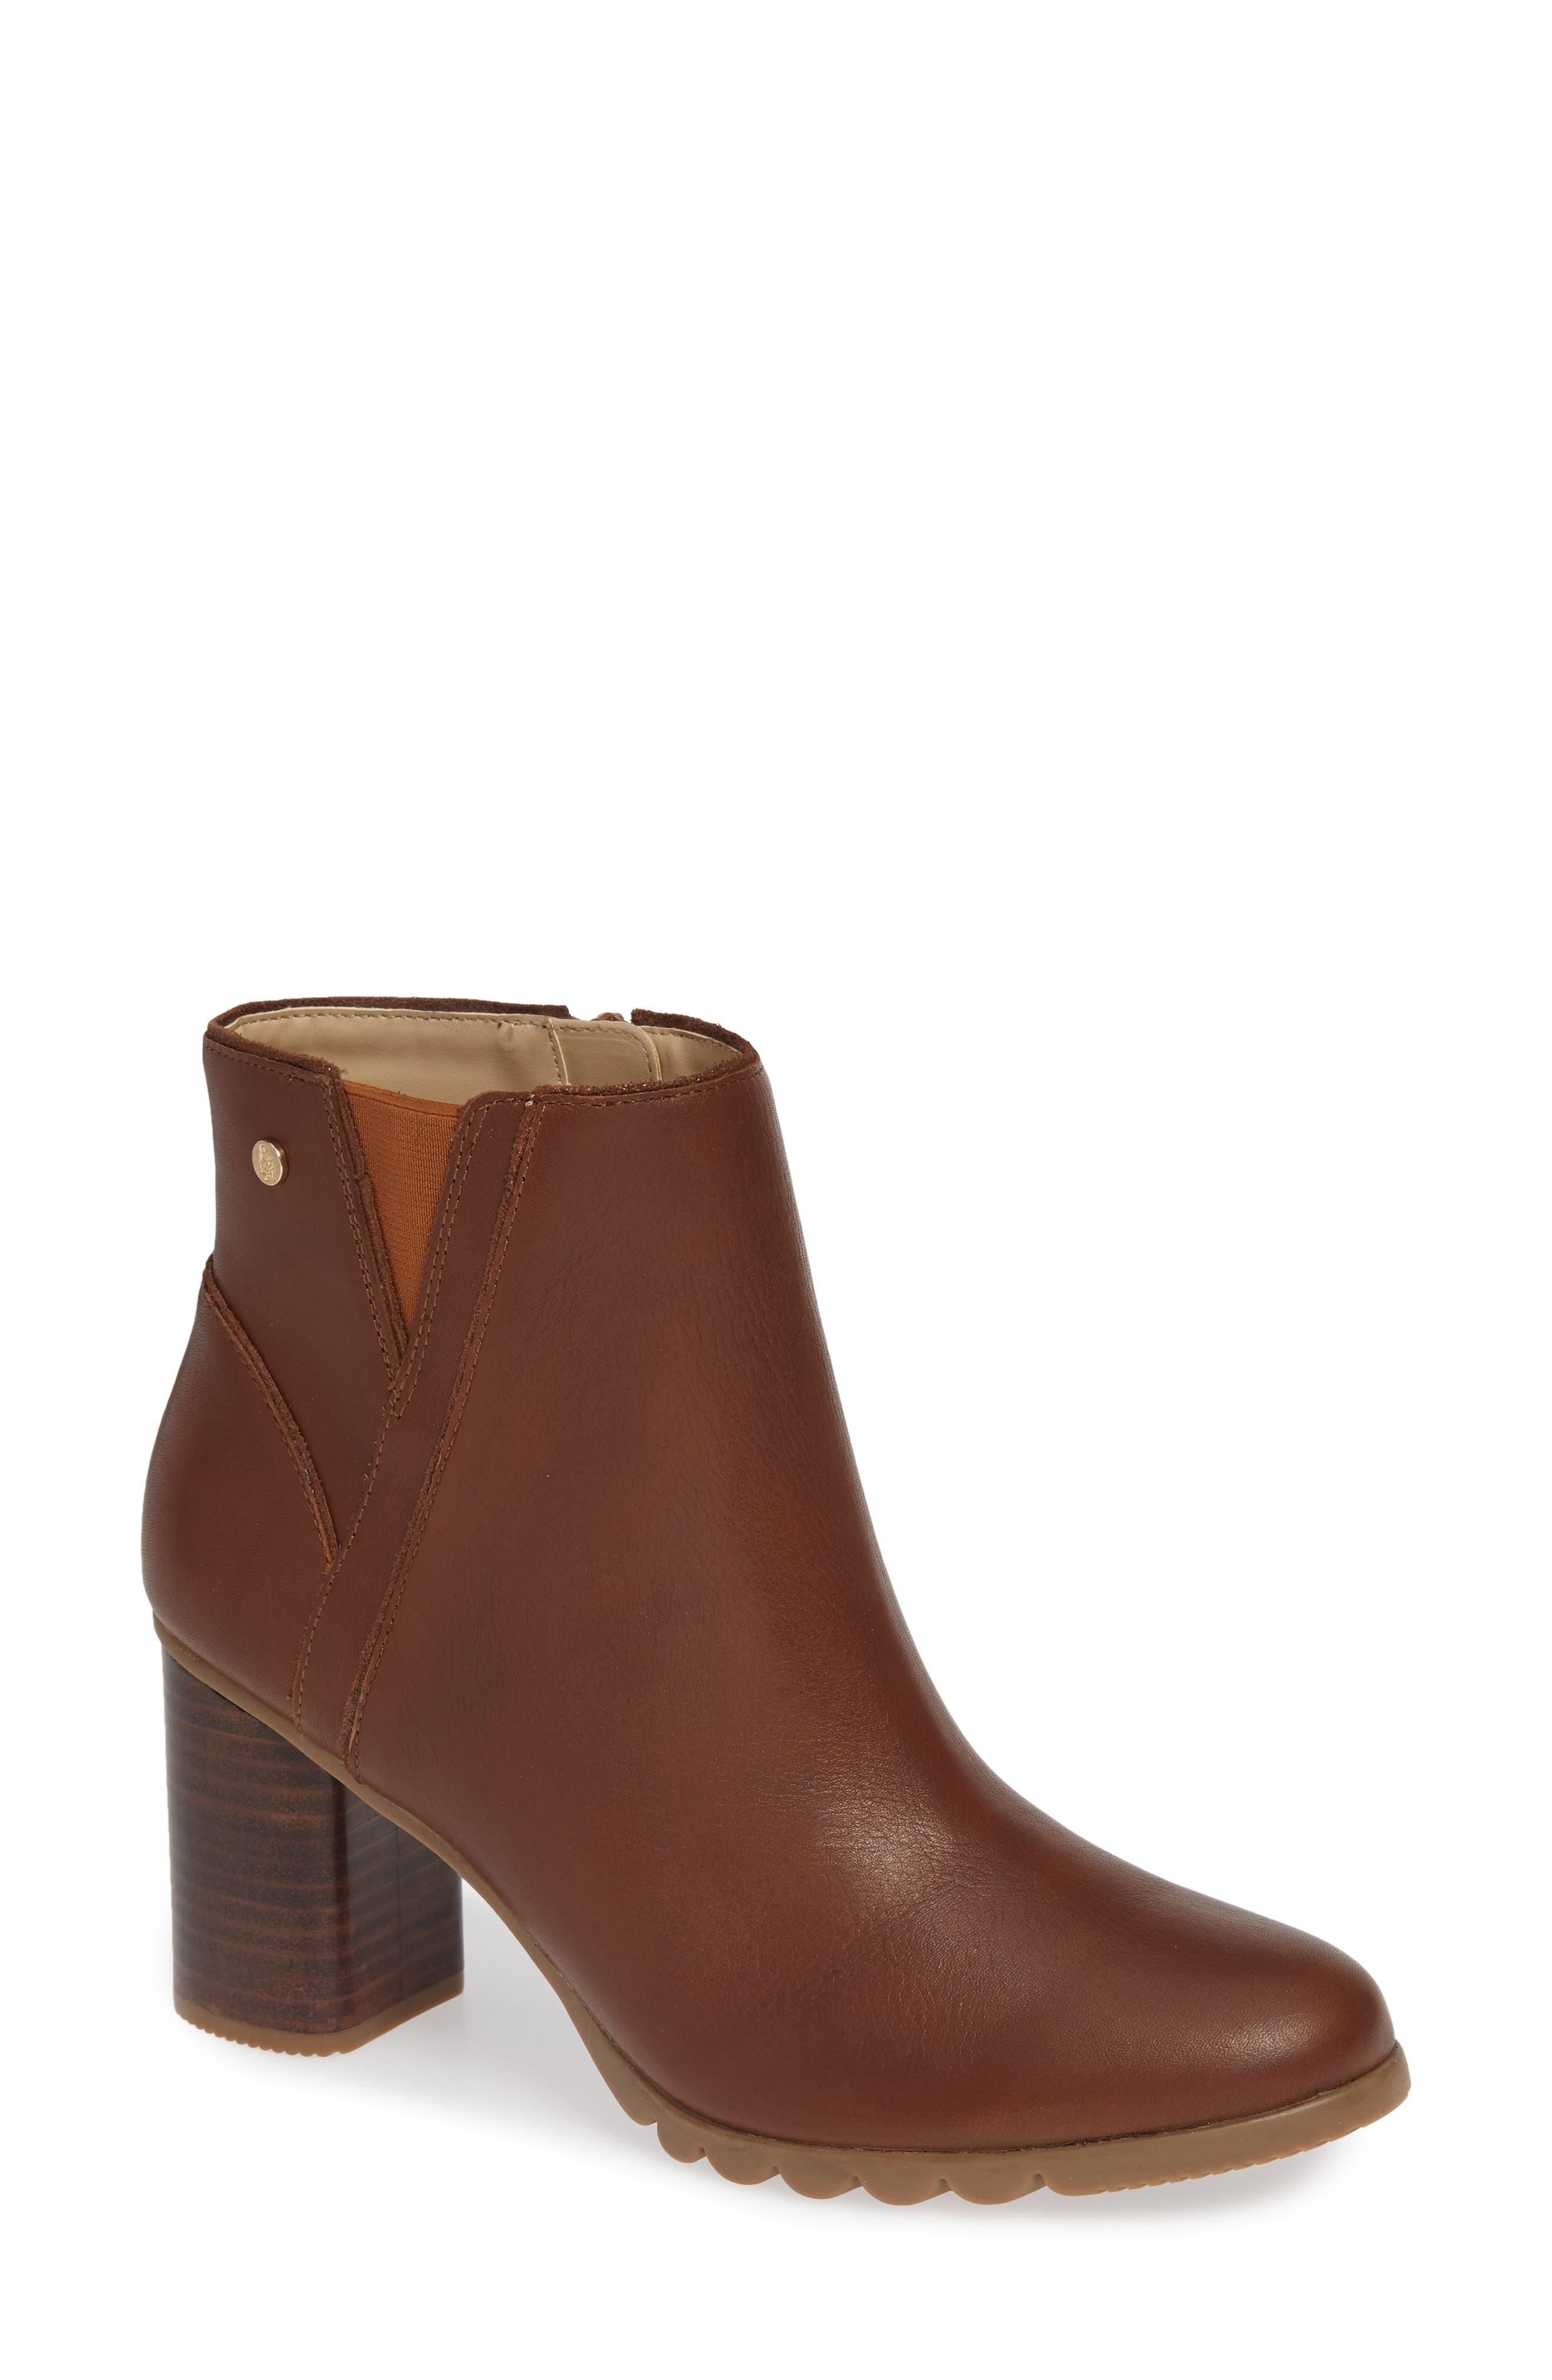 Hush Puppies Spaniel Ankle Bootie W - Brown